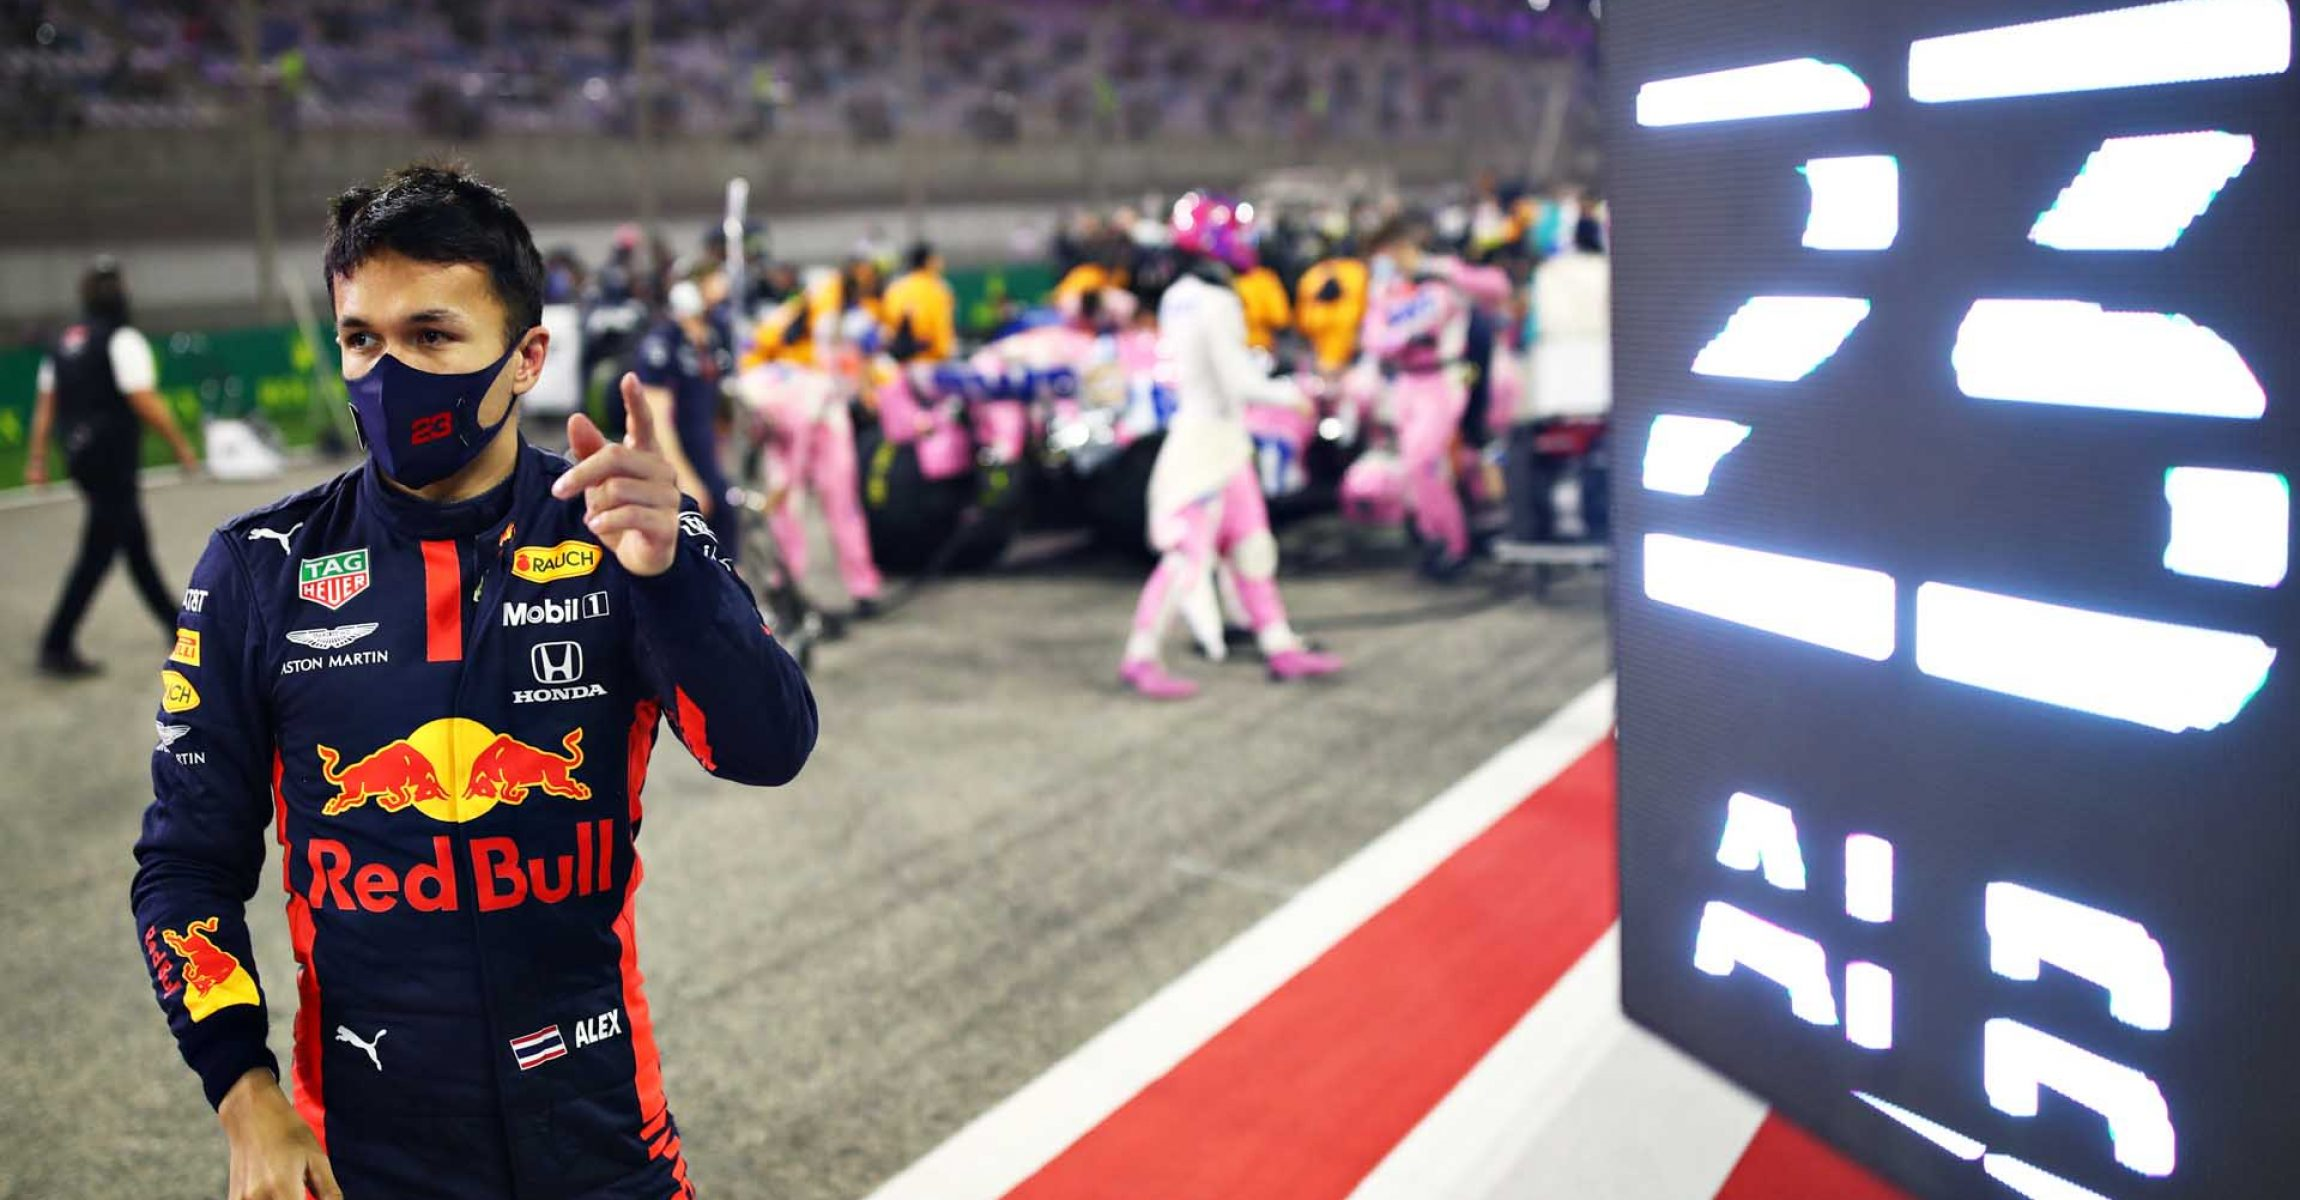 BAHRAIN, BAHRAIN - DECEMBER 06: Alexander Albon of Thailand and Red Bull Racing prepares to drive on the grid before the F1 Grand Prix of Sakhir at Bahrain International Circuit on December 06, 2020 in Bahrain, Bahrain. (Photo by Mark Thompson/Getty Images)